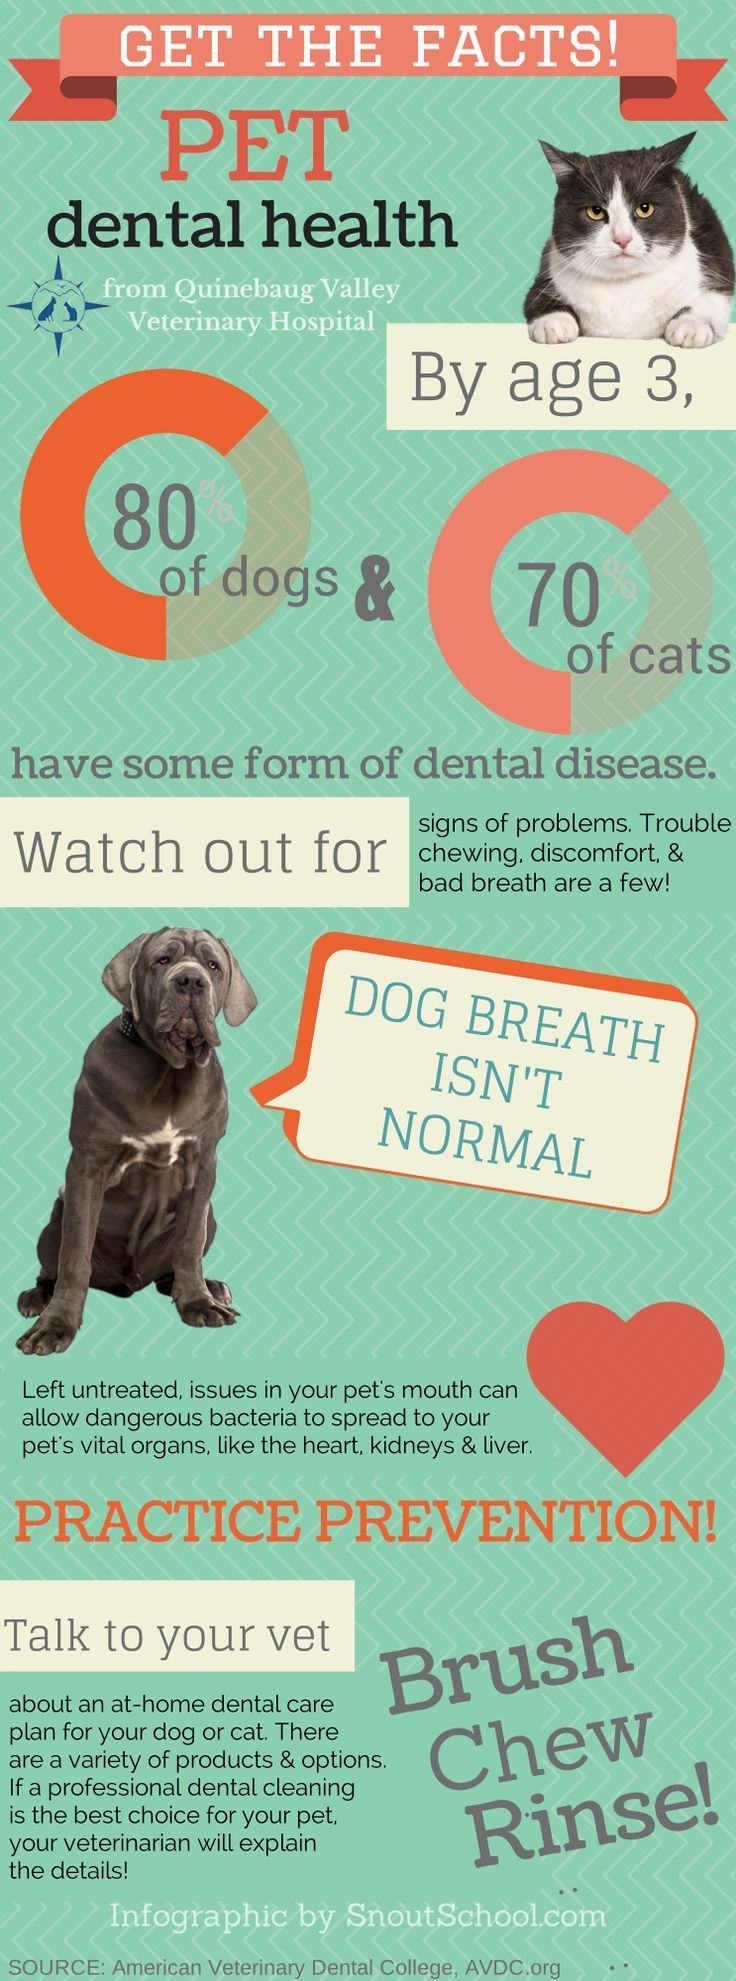 It's Pet Dental Health Month. Get the facts you need to keep your pet's mouth healthy and clean! Check out May's DoggyBarx box full of goodies with the dental health benefit for your fur kid/s.. FREE SHIPPING & for every DoggyBarx box sold, For Tails Only will donate a $1  to a rescue. Take advantage of this $39.95 special here www.fortailsonly.com/#melissavanek  Referring code IH421  #petlovers #pets #animals #dogs #dental #health #rescue #vets #shelter #ofrtailsonly #fto